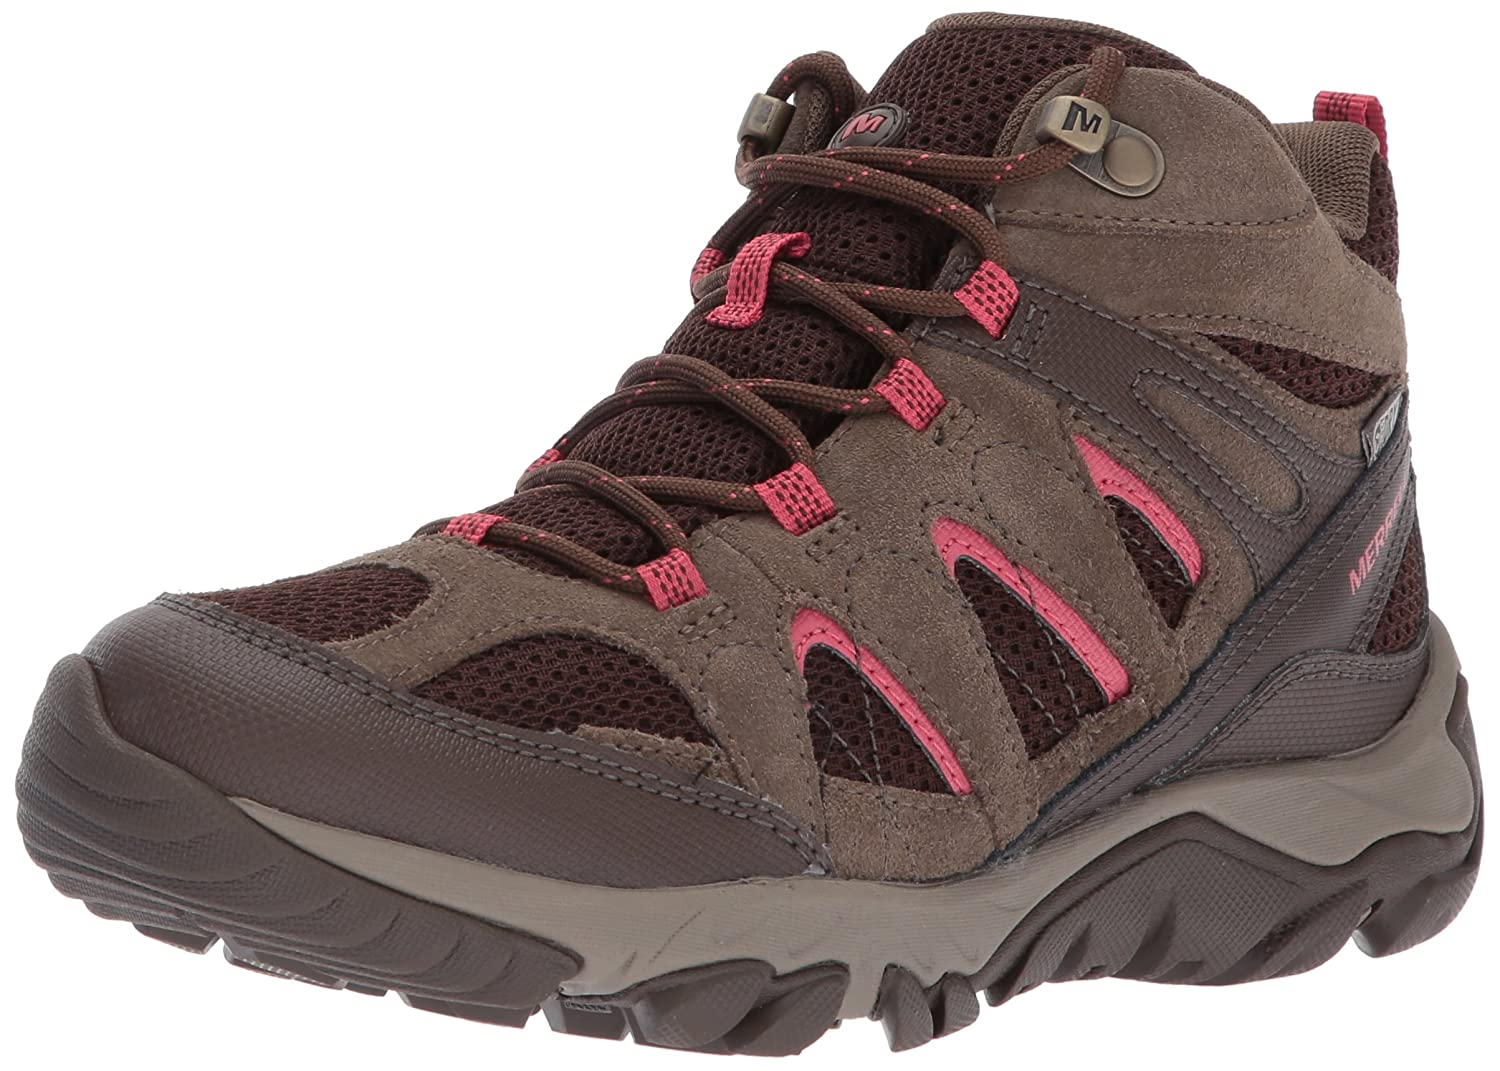 Merrell Women's Outmost Mid Vent Waterproof Hiking Boot OUTMOST MID VENT WTPF-W